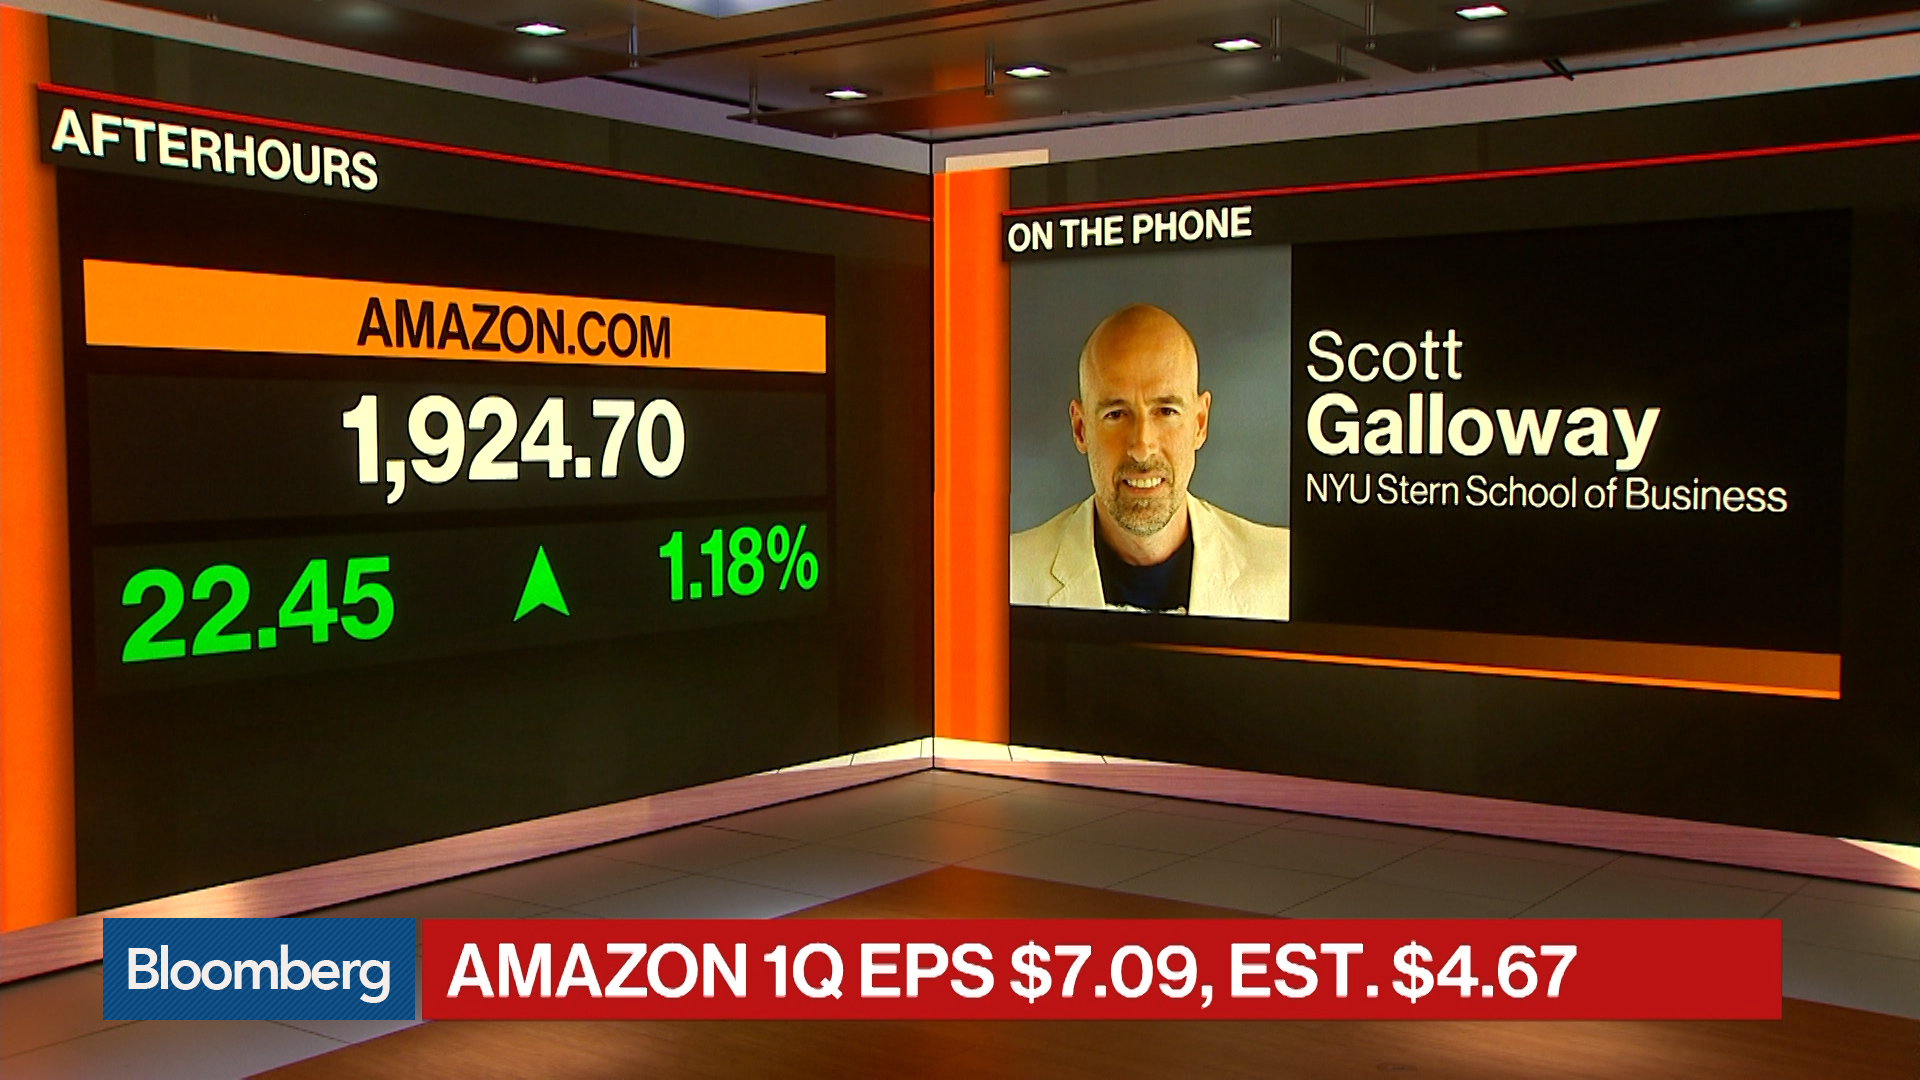 Amazon Is a Juggernaut Firing on All Cylinders, NYU's Galloway Says